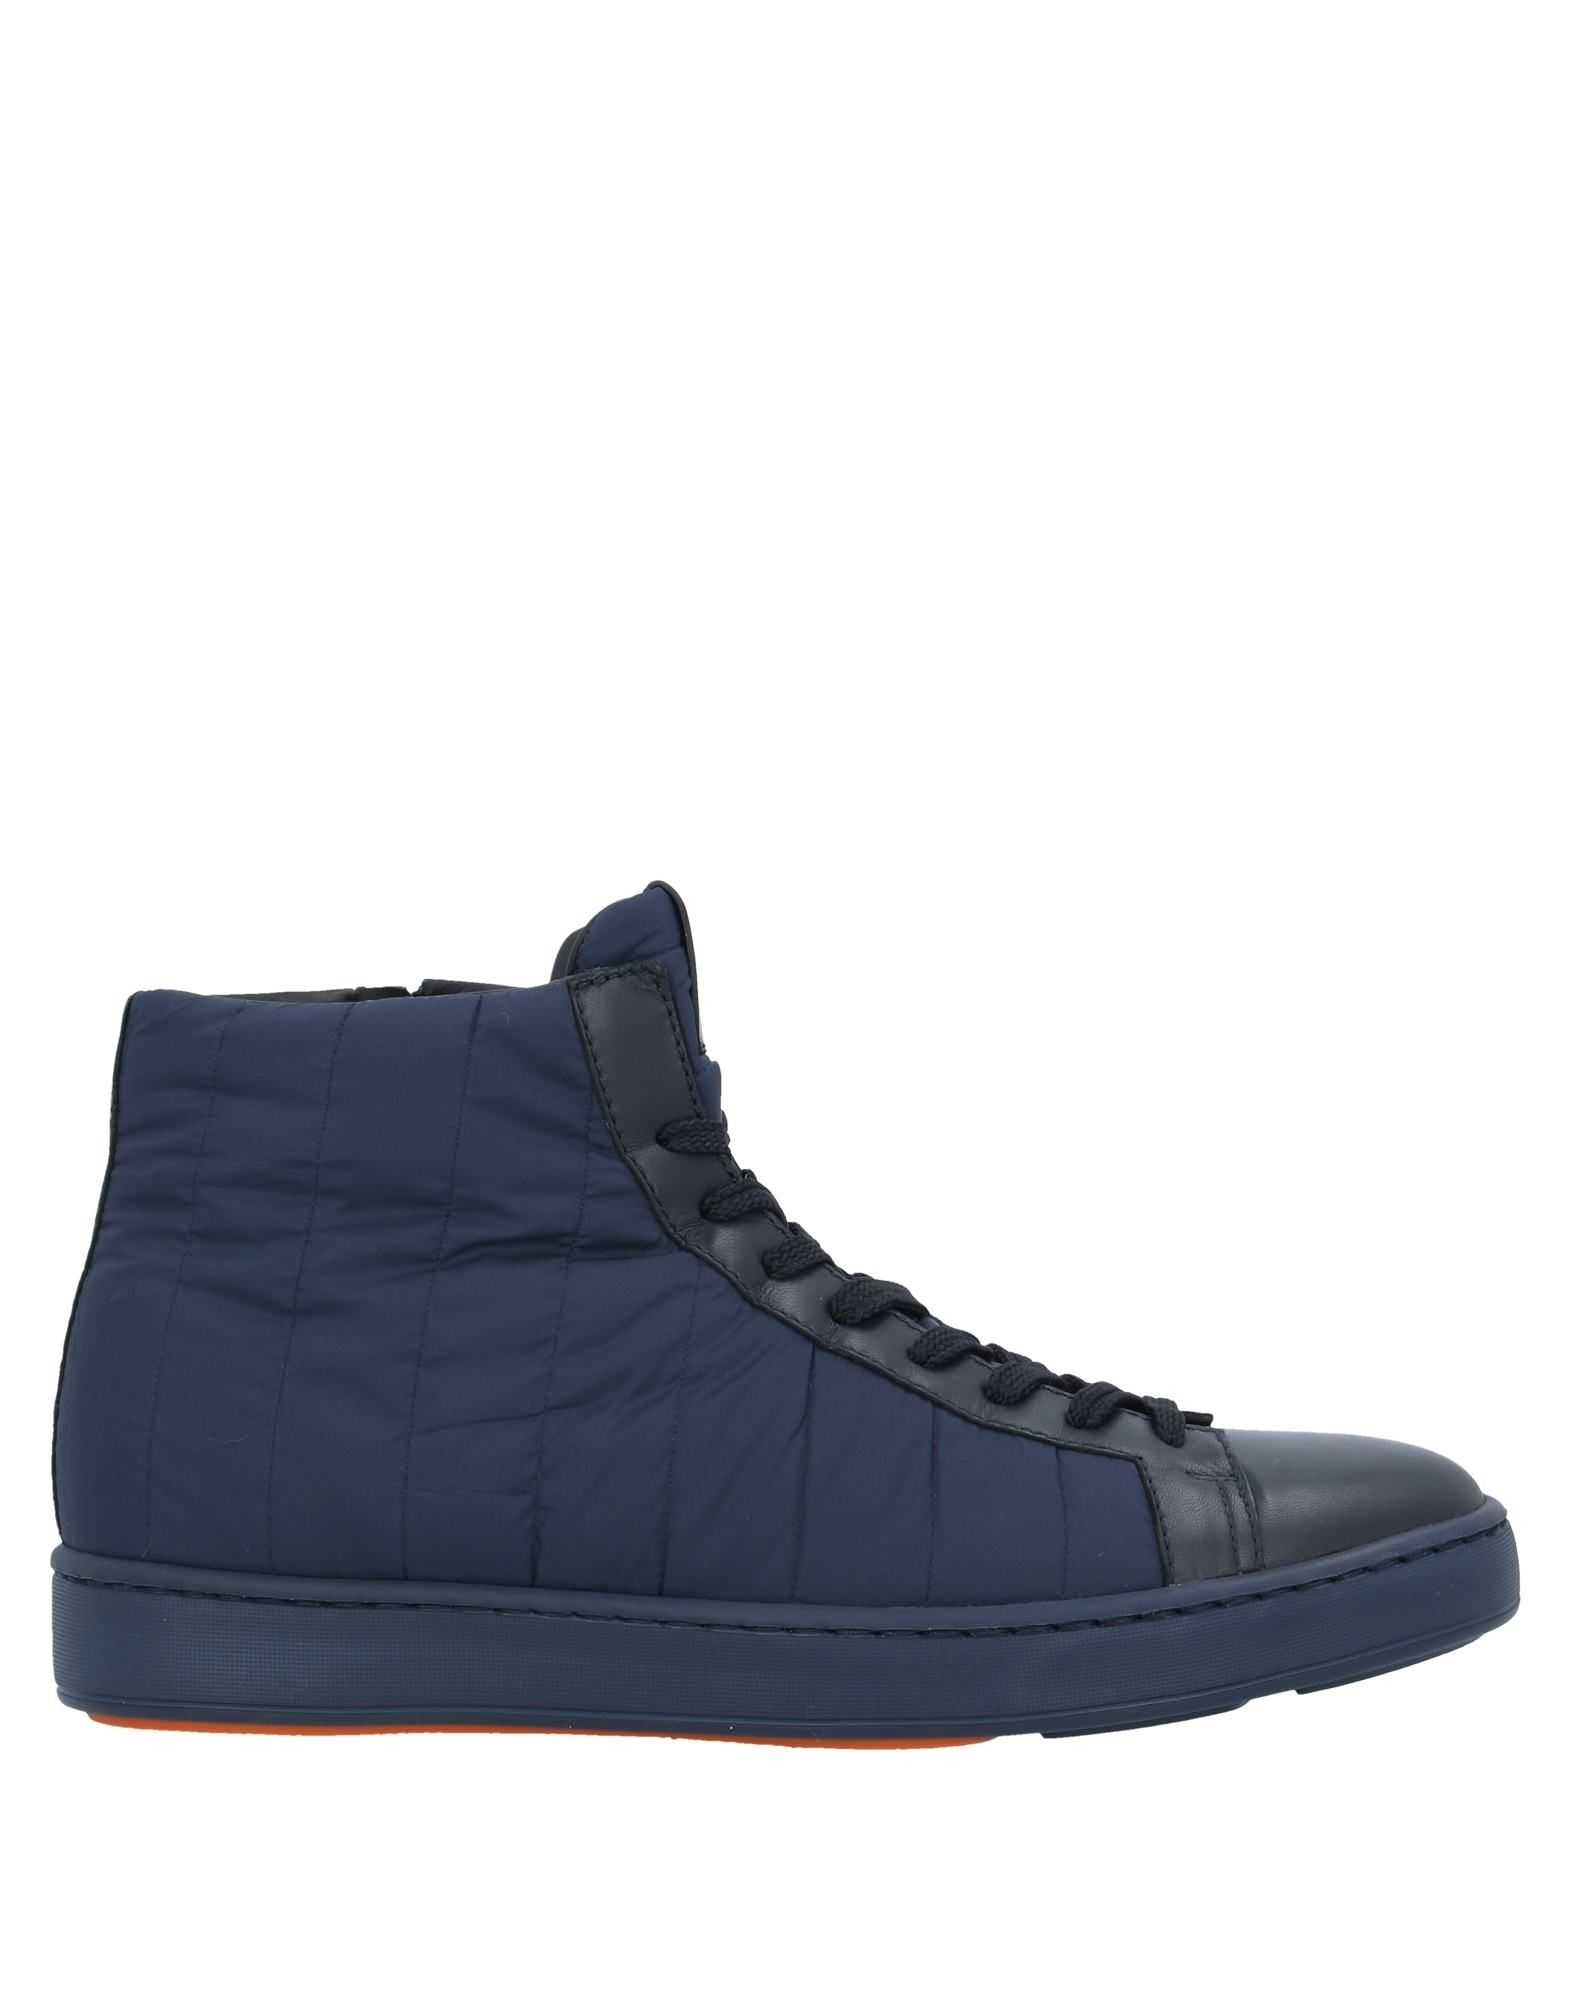 SANTONI Sneakers. no appliqués, solid color, zipper closure, round toeline, flat, leather lining, rubber cleated sole, contains non-textile parts of animal origin, large sized. Soft Leather, Textile fibers